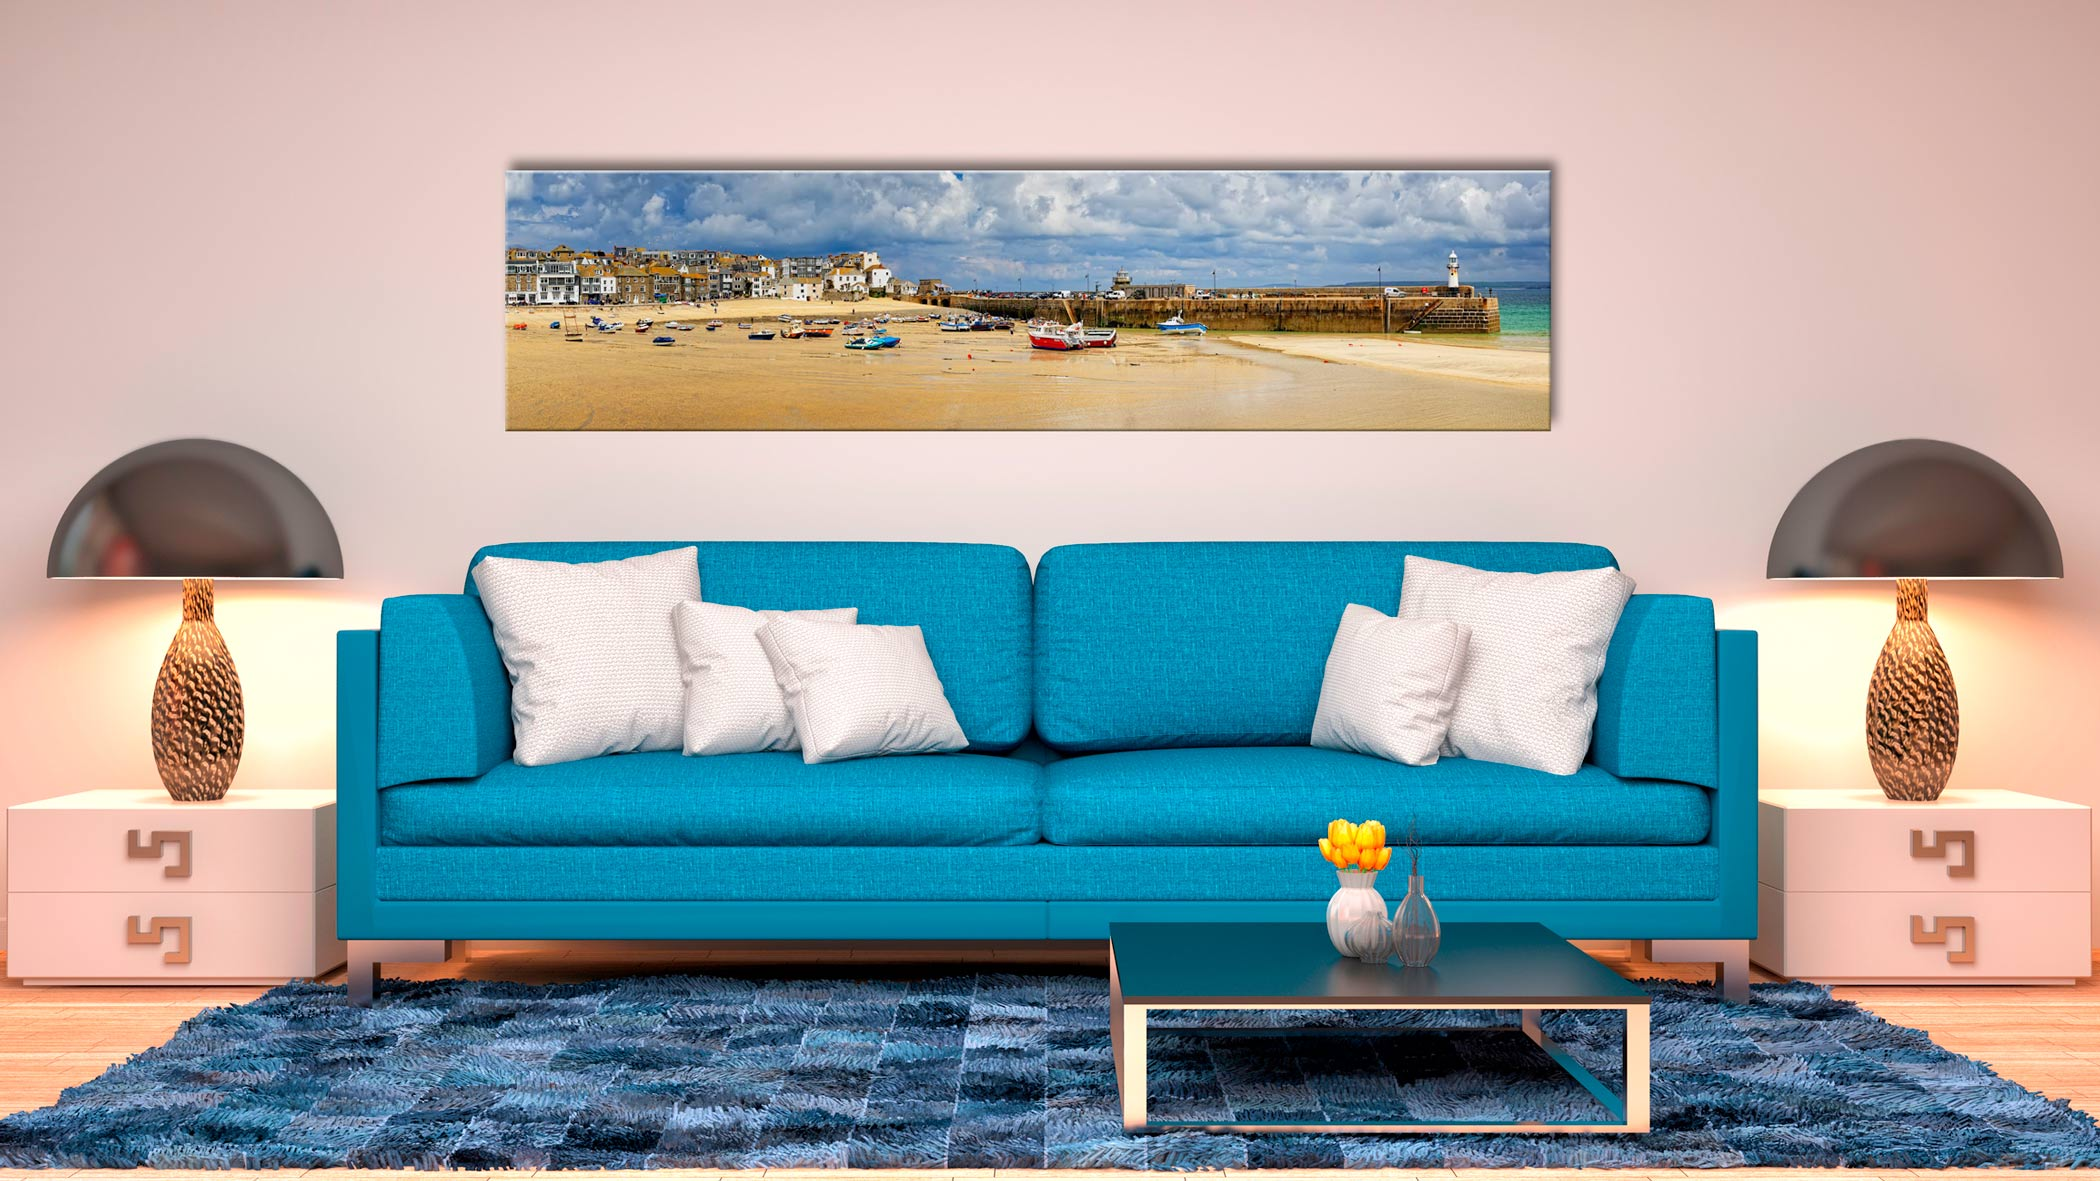 St Ives Cloudy Panorama - Print Aluminium Backing With Acrylic Glazing on Wall